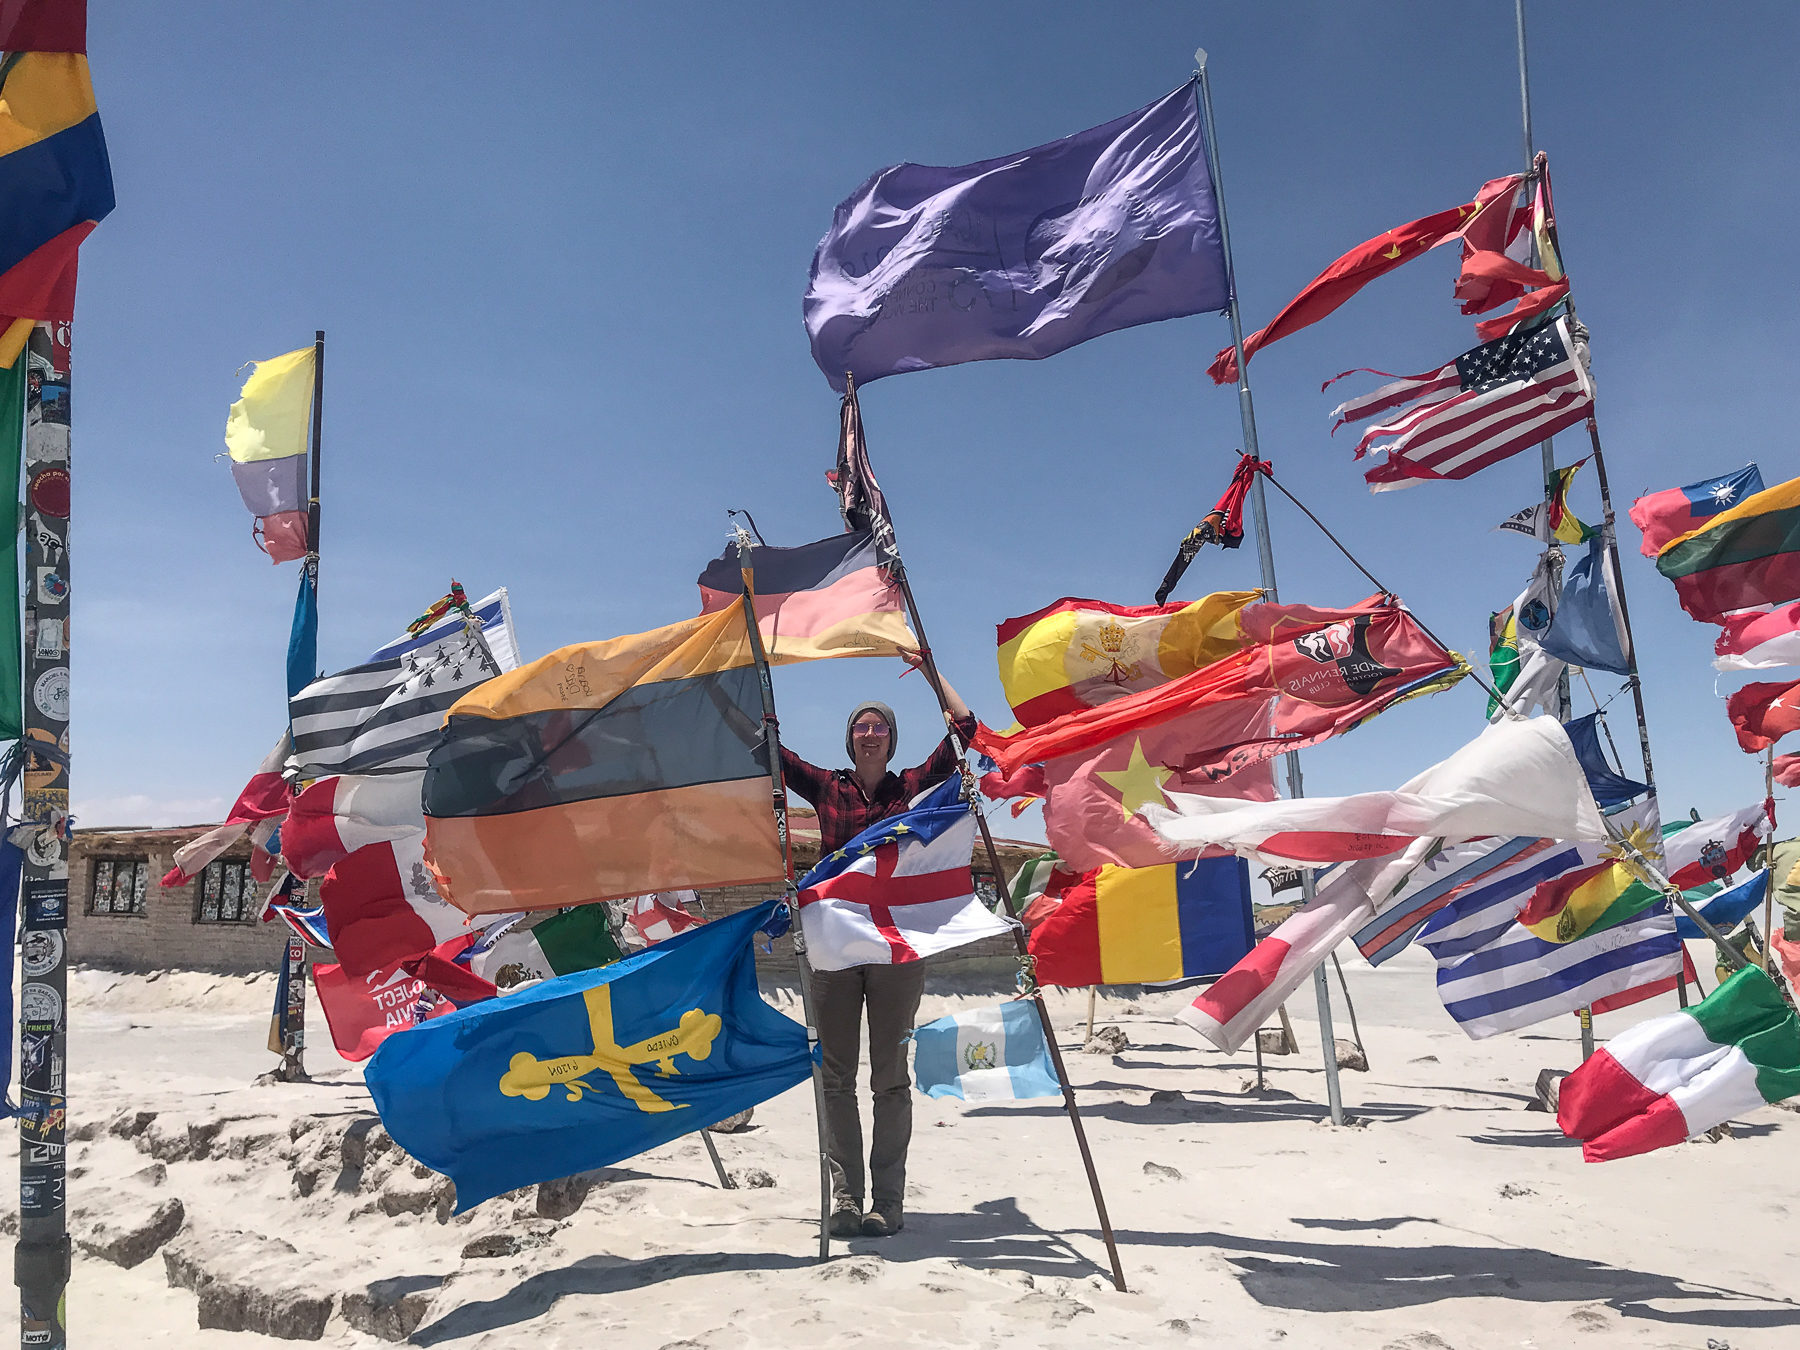 Between flags of all nations in the salt desert near Uyuni, Bolivia. Travel broadens the horizon.